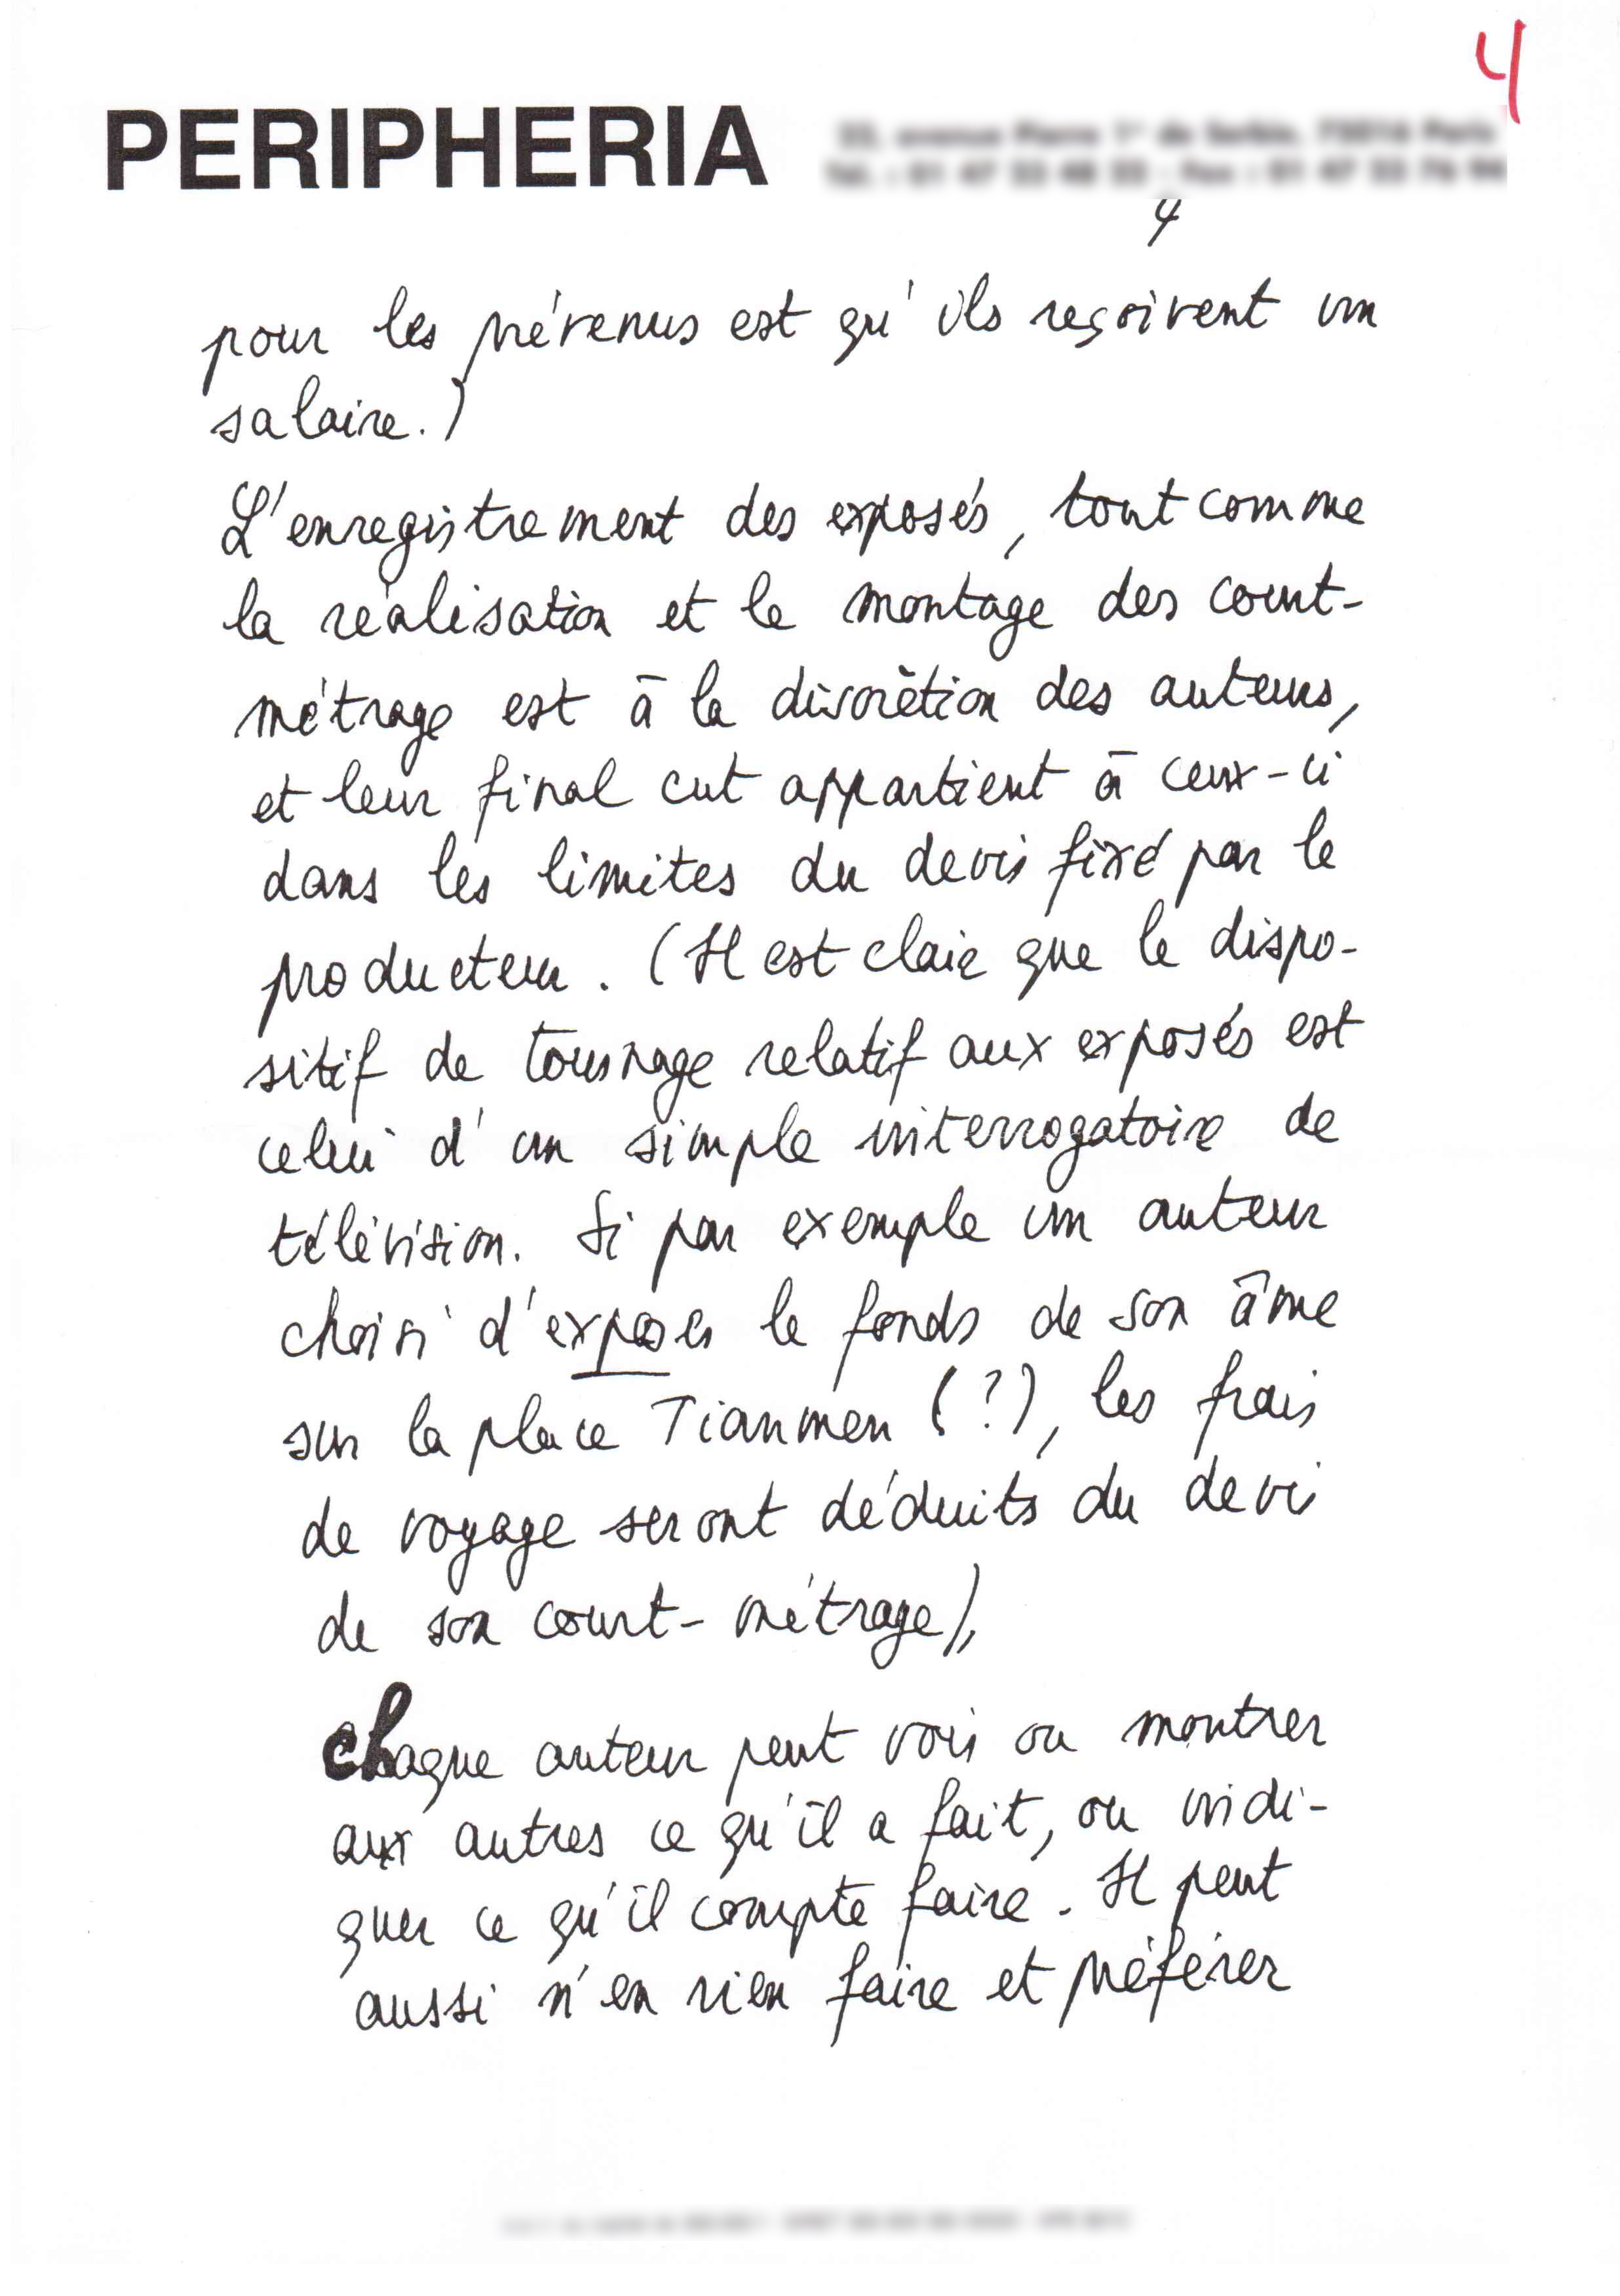 Document 4, partie 4